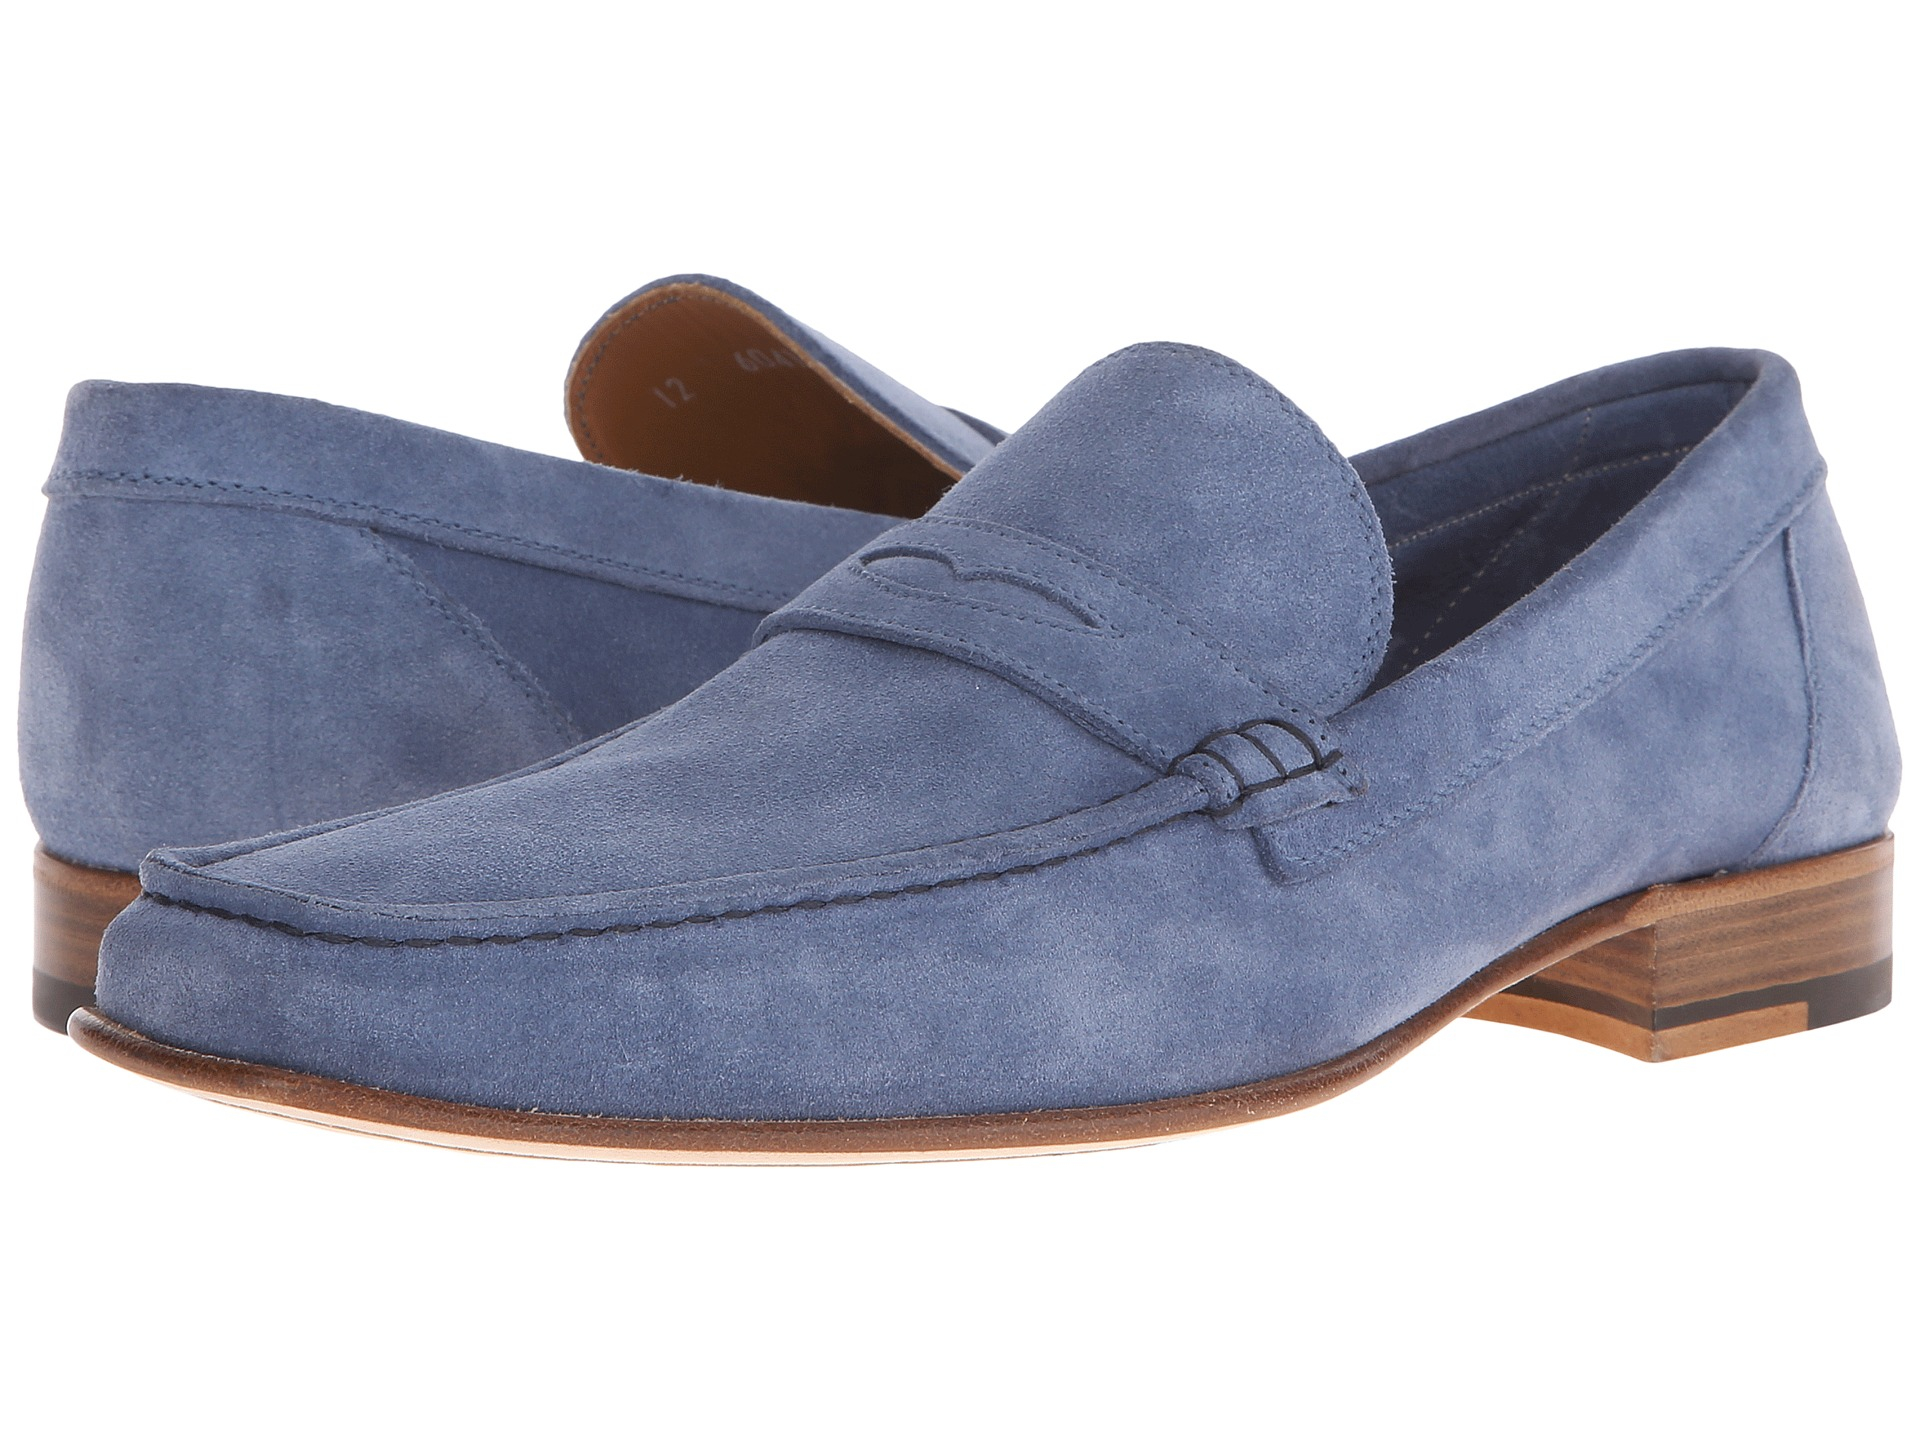 Lyst - A.testoni Unlined Suede Penny Loafer in Blue for Men